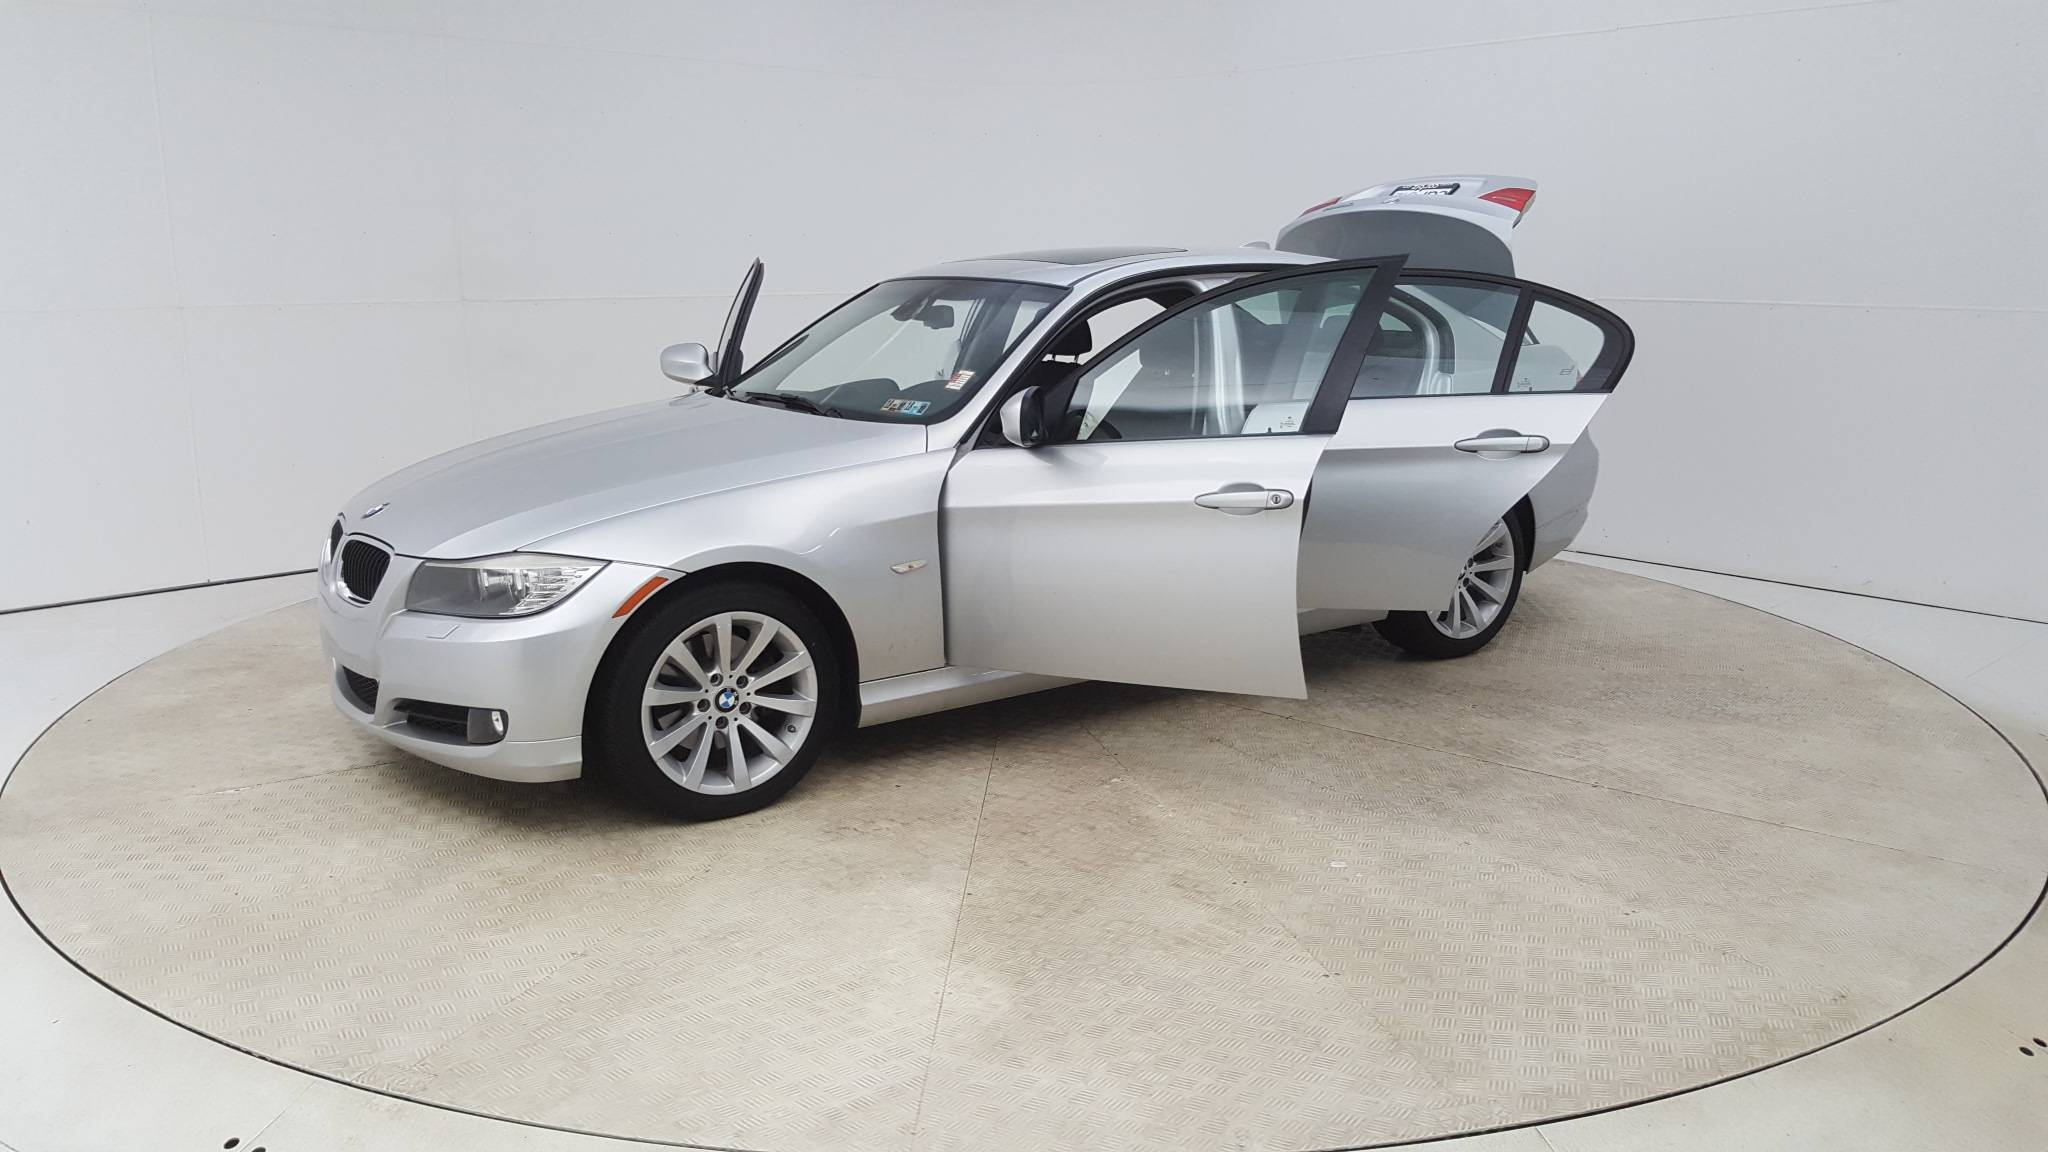 Pre Owned 2011 Bmw 328i 4dr Car In Baltimore A8339 Carbiz Fuel Filter